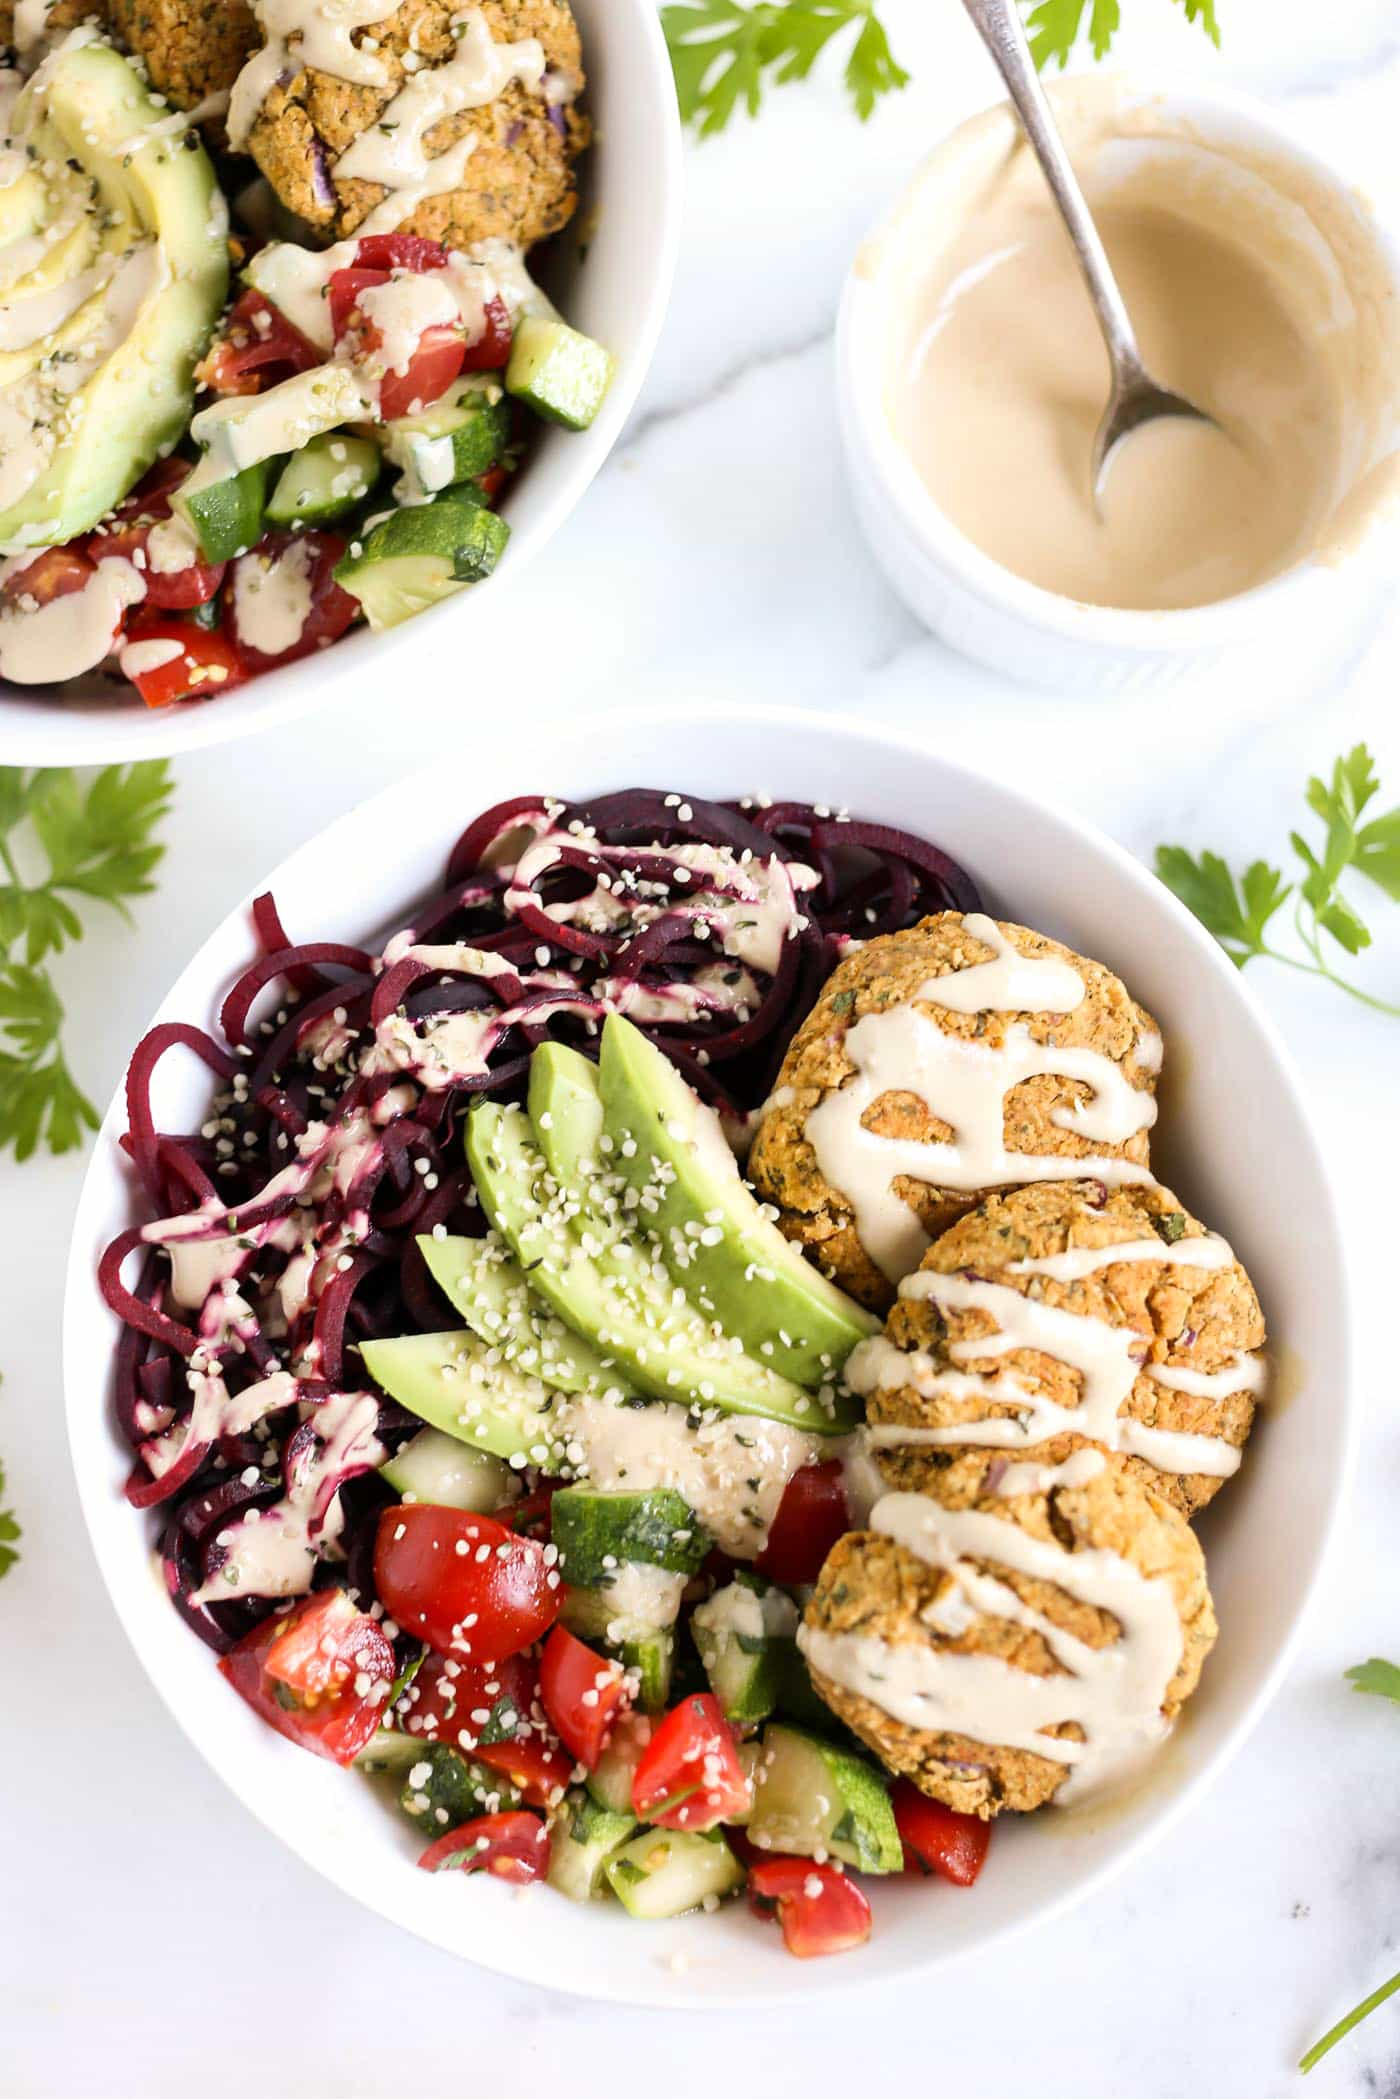 VEGETARIAN FALAFEL BOWLS with beet noodles. cucumbers, tomatoes and a creamy tahini dressing!